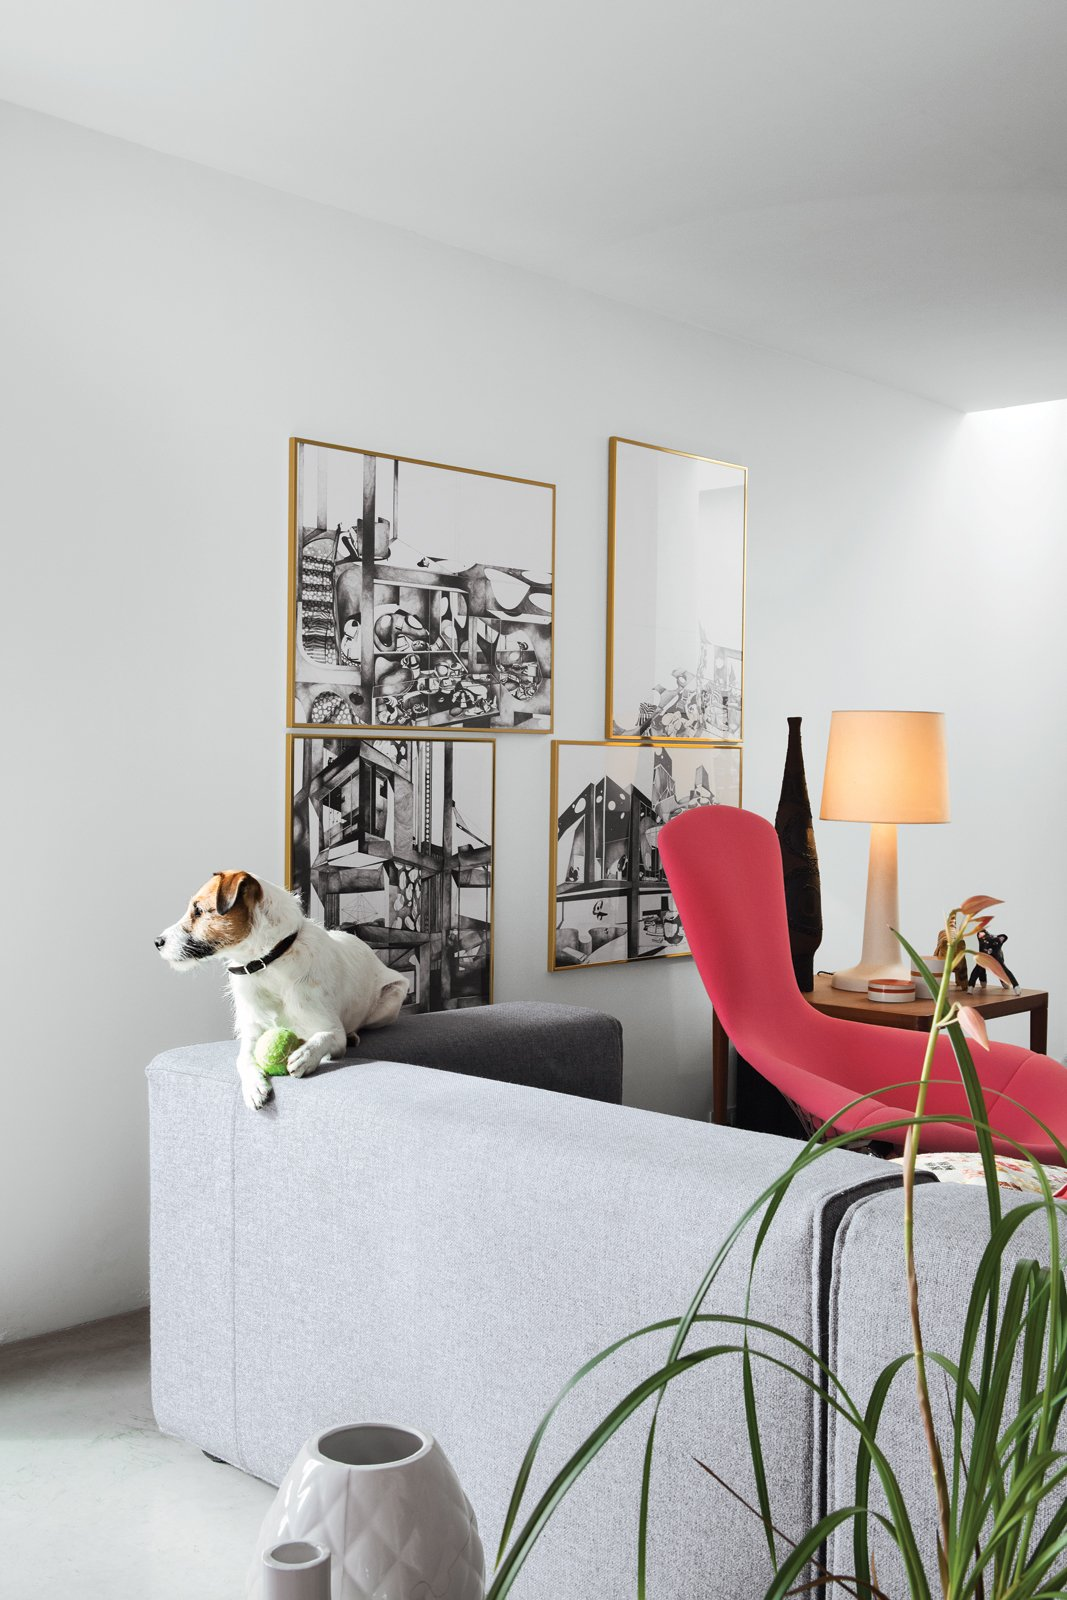 Living Room, Concrete Floor, Lamps, Chair, and Sofa Ibbel, a Parson Russell terrier, and his tennis ball survey the living room from the back of a Cuba sofa by Rodolfo Dordoni for Cappellini. The framed drawings are by Poorter and Holdrinet.  Photo 18 of 25 in Leap Into the Year of the Dog With These 25 Pups in the Modern World from This Factory Switches Out Cattle-Fodder for Furniture